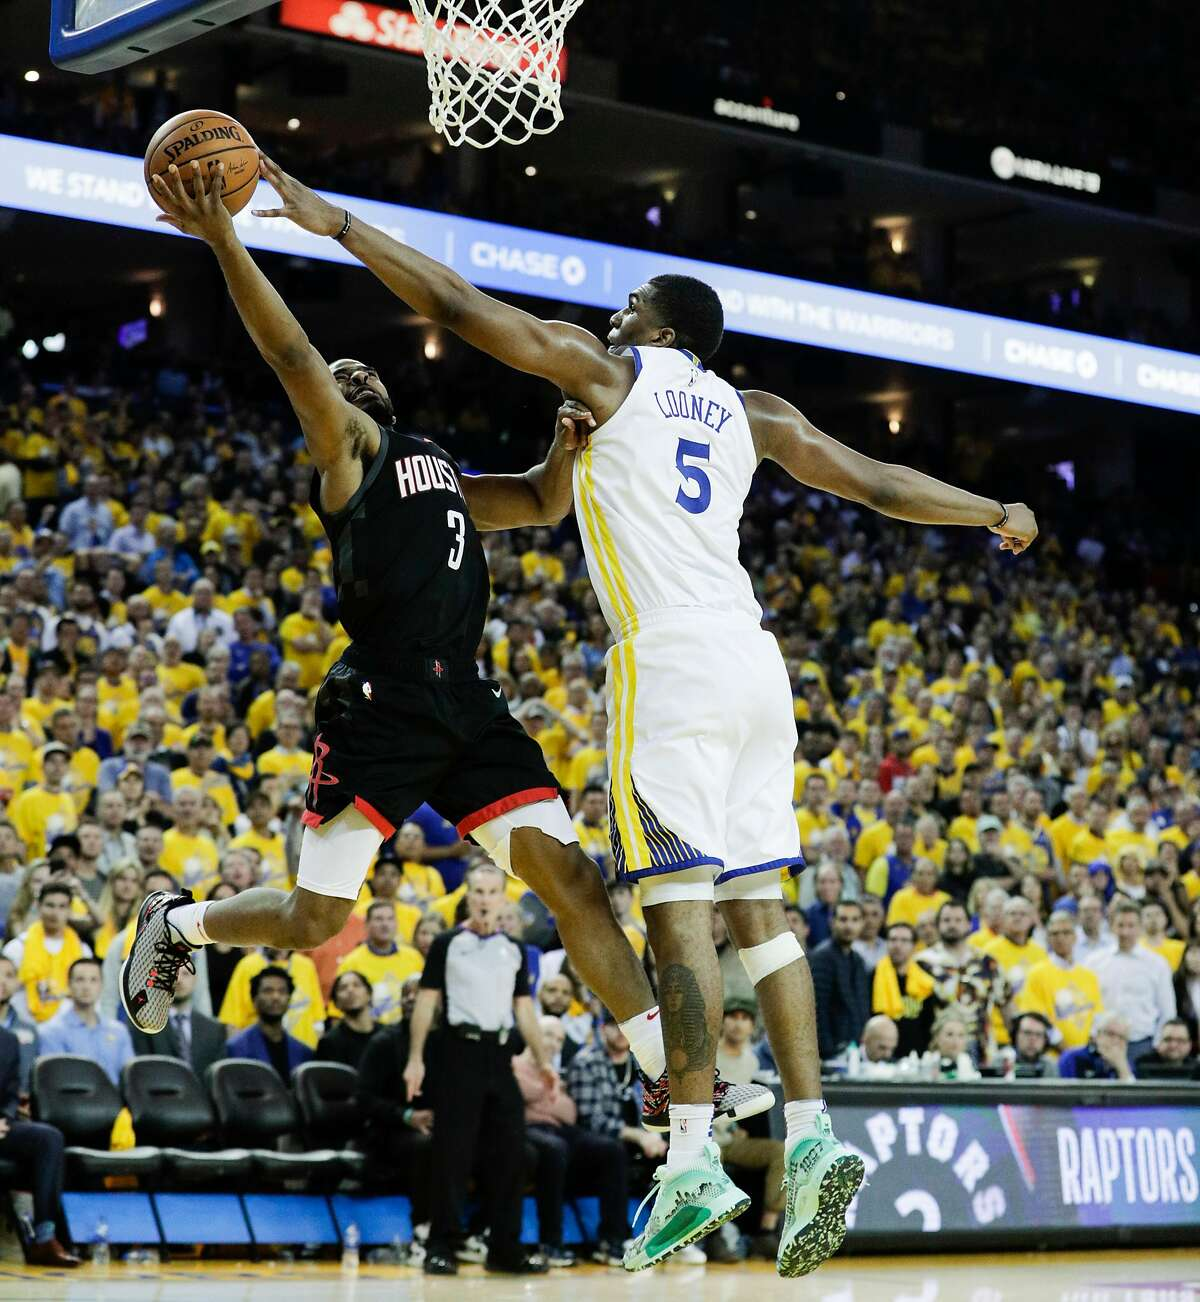 Golden State Warriors Kevon Looney blocks a Houston Rockets Chris Paul shot in the fourth quarter during game 5 of the Western Conference Semifinals between the Golden State Warriors and the Houston Rockets at Oracle Arena on Wednesday, May 8, 2019 in Oakland, Calif.